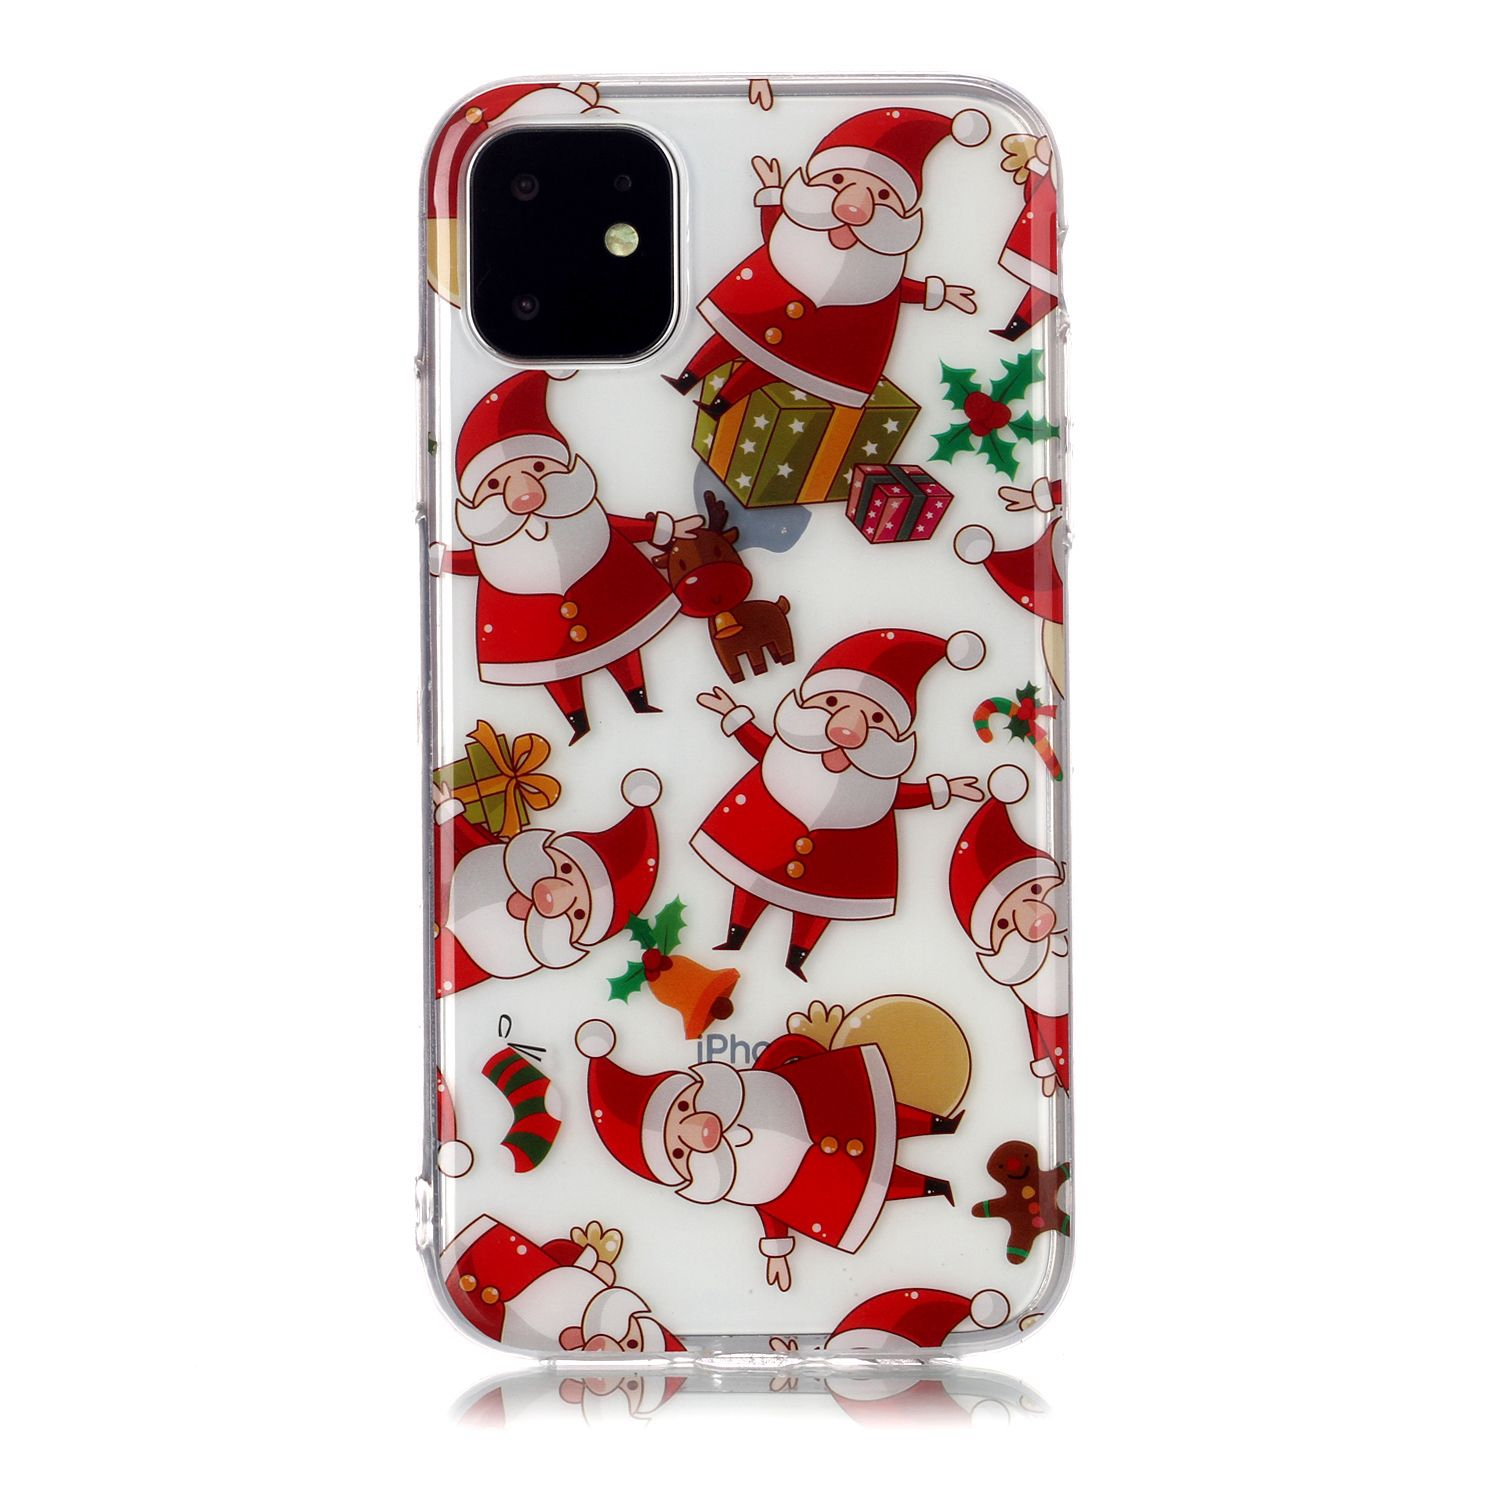 For Apple iPhone11 Mobile Shell Soft TPU Phone Case Smartphone Cover Elk Snow Christmas Series Pattern Protective Shell